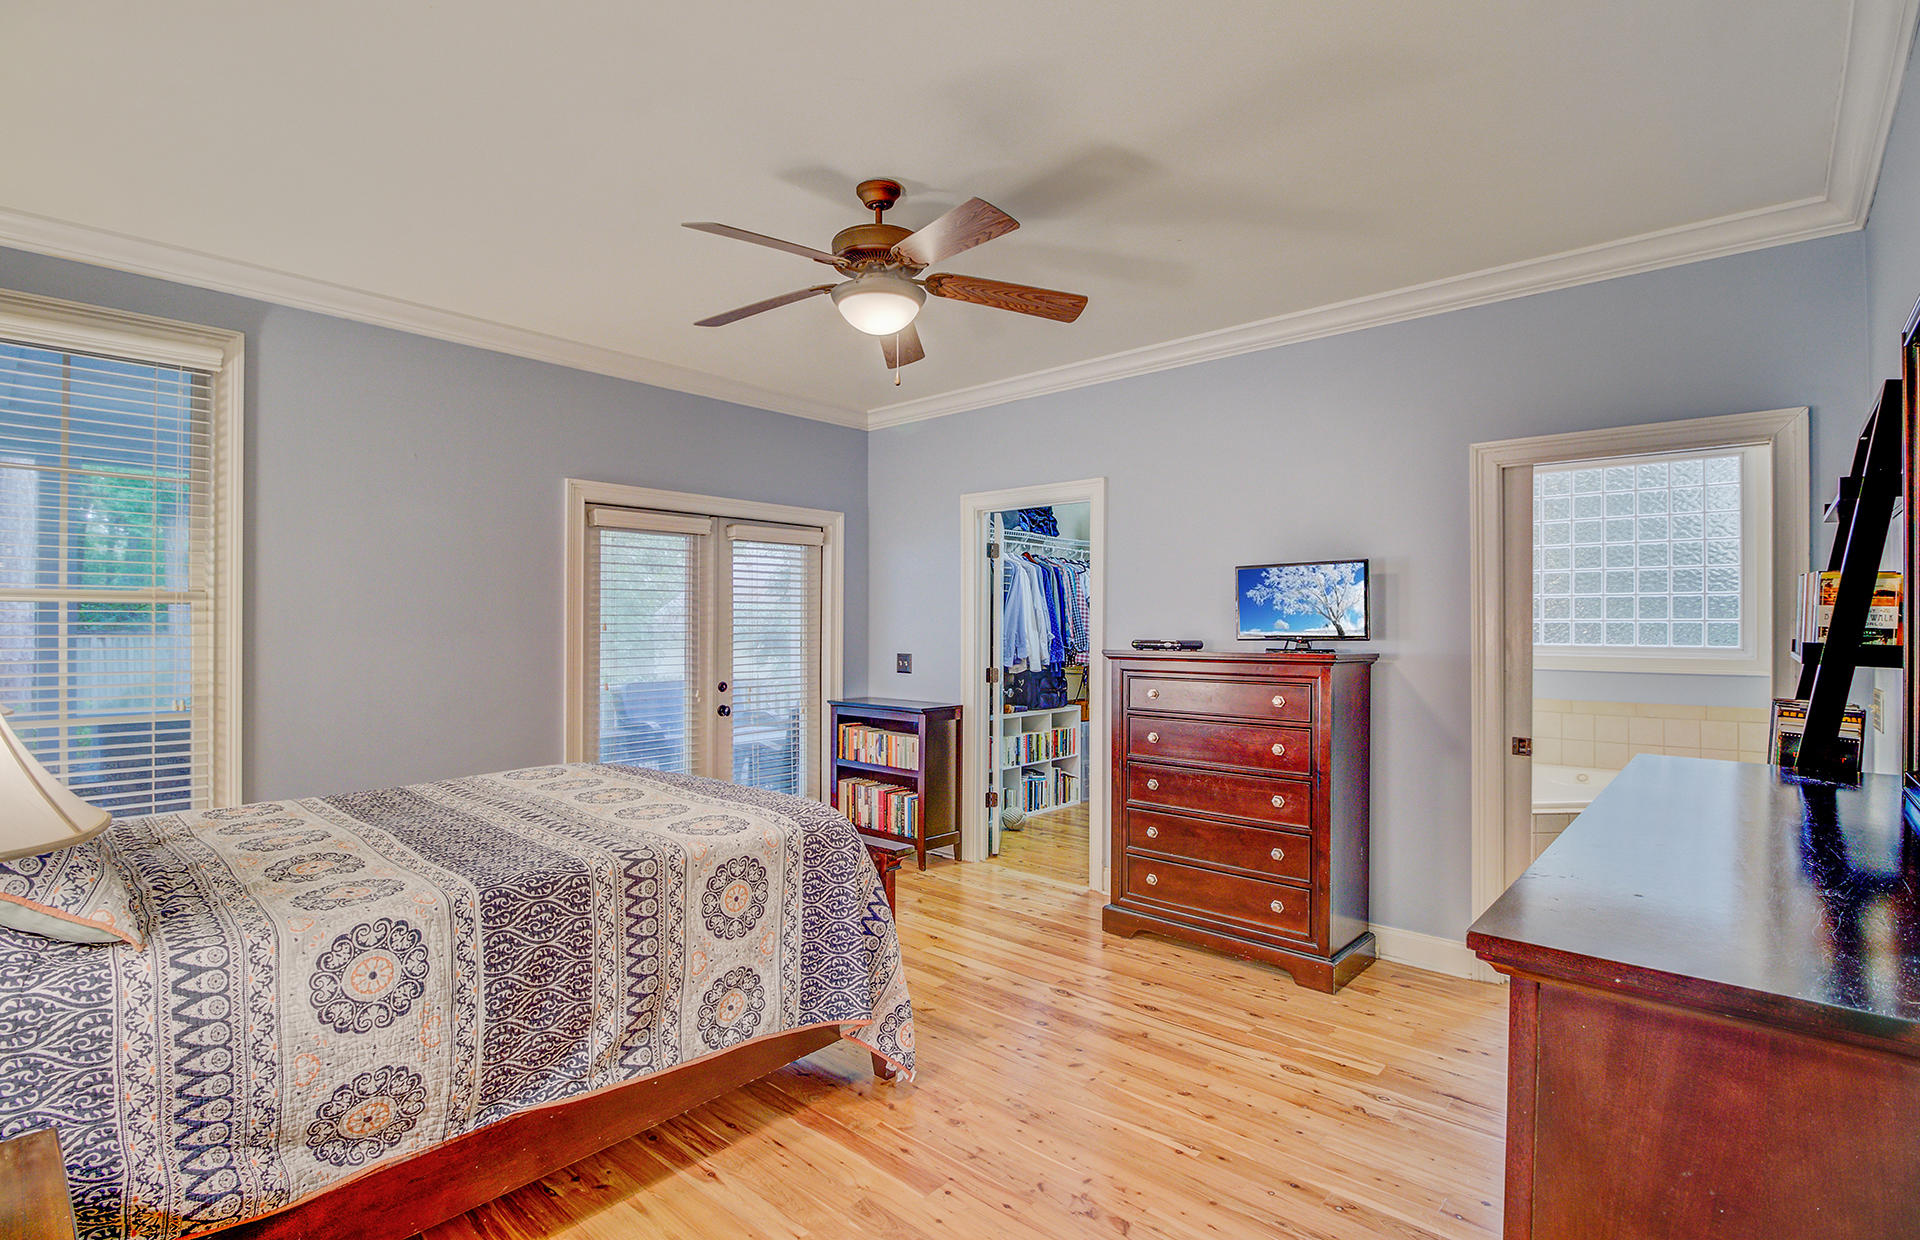 The Villages In St Johns Woods Homes For Sale - 5032 Coral Reef, Johns Island, SC - 21